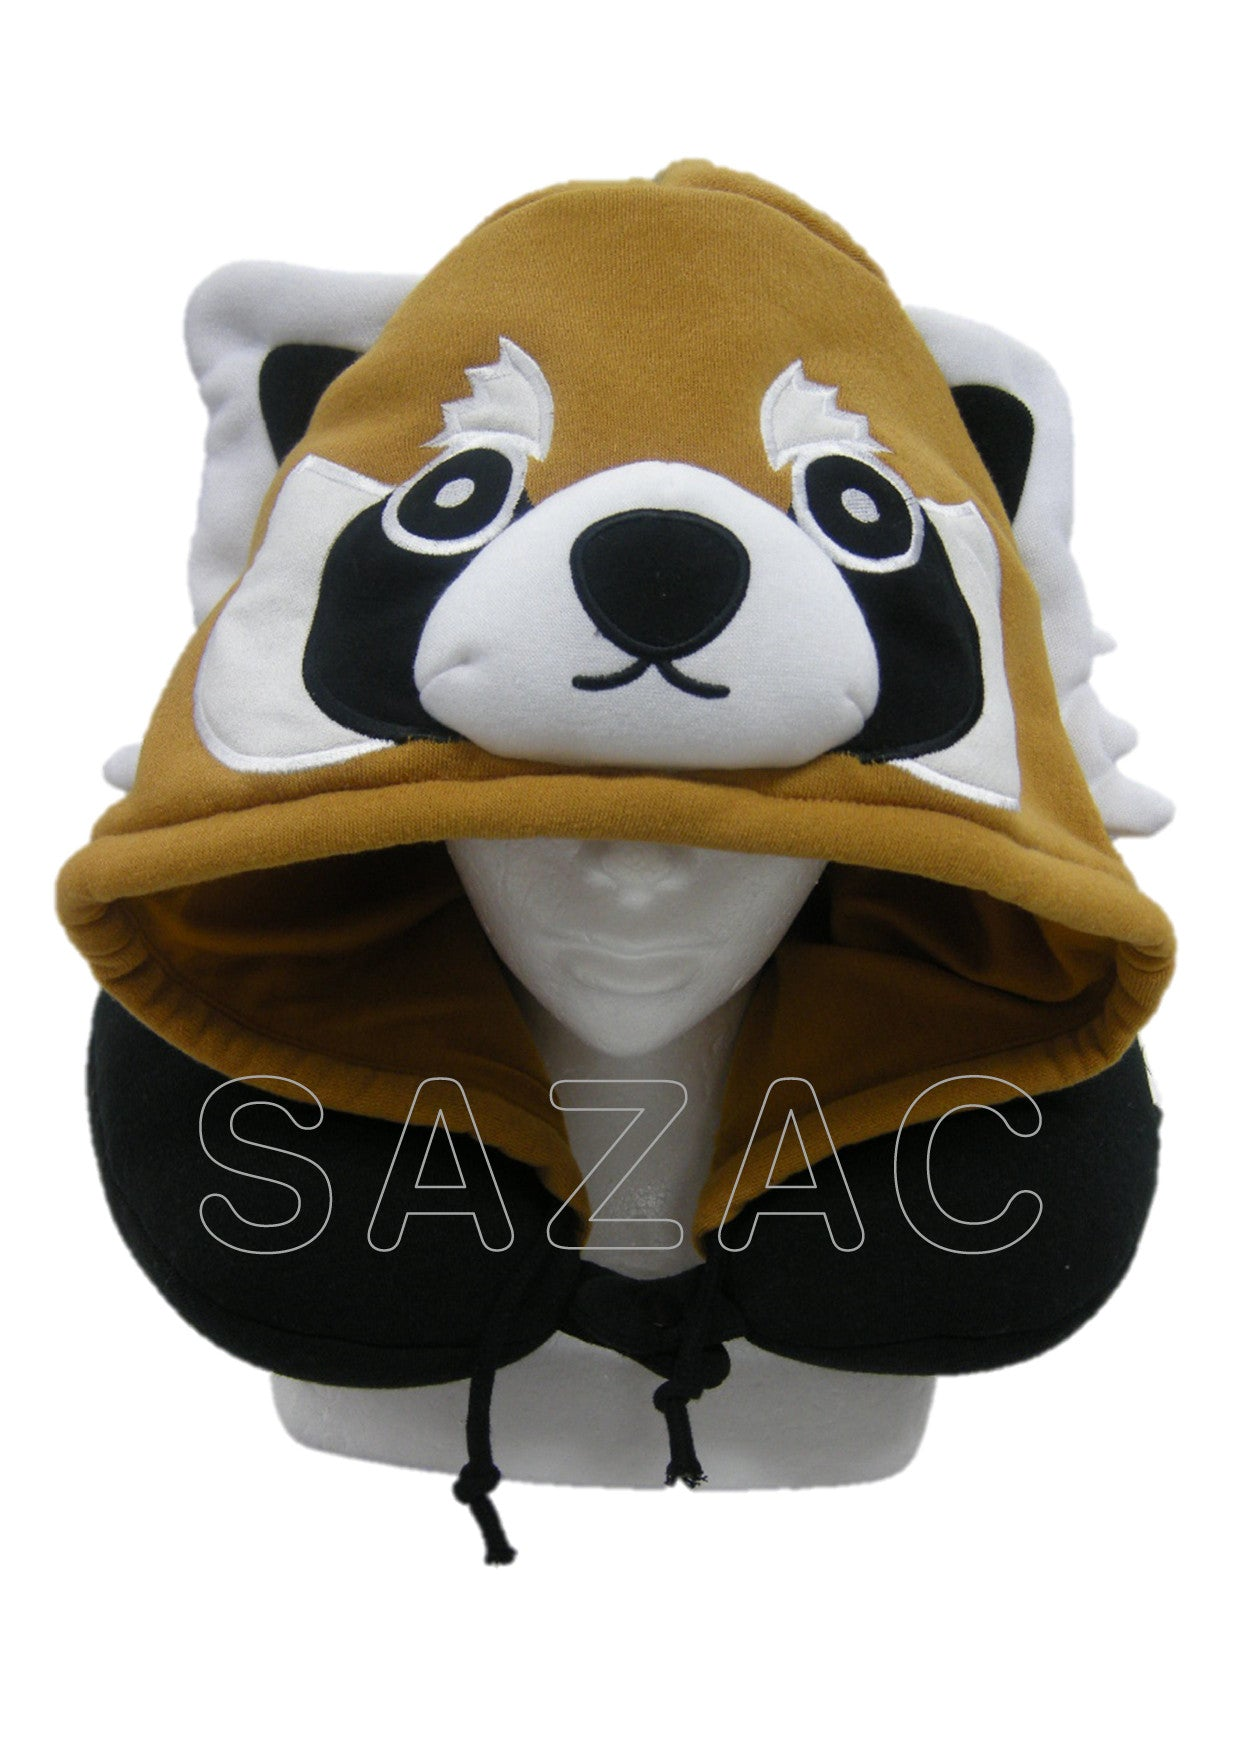 Lesser Panda (Red Panda) Neck Pillow OUTLET SALE